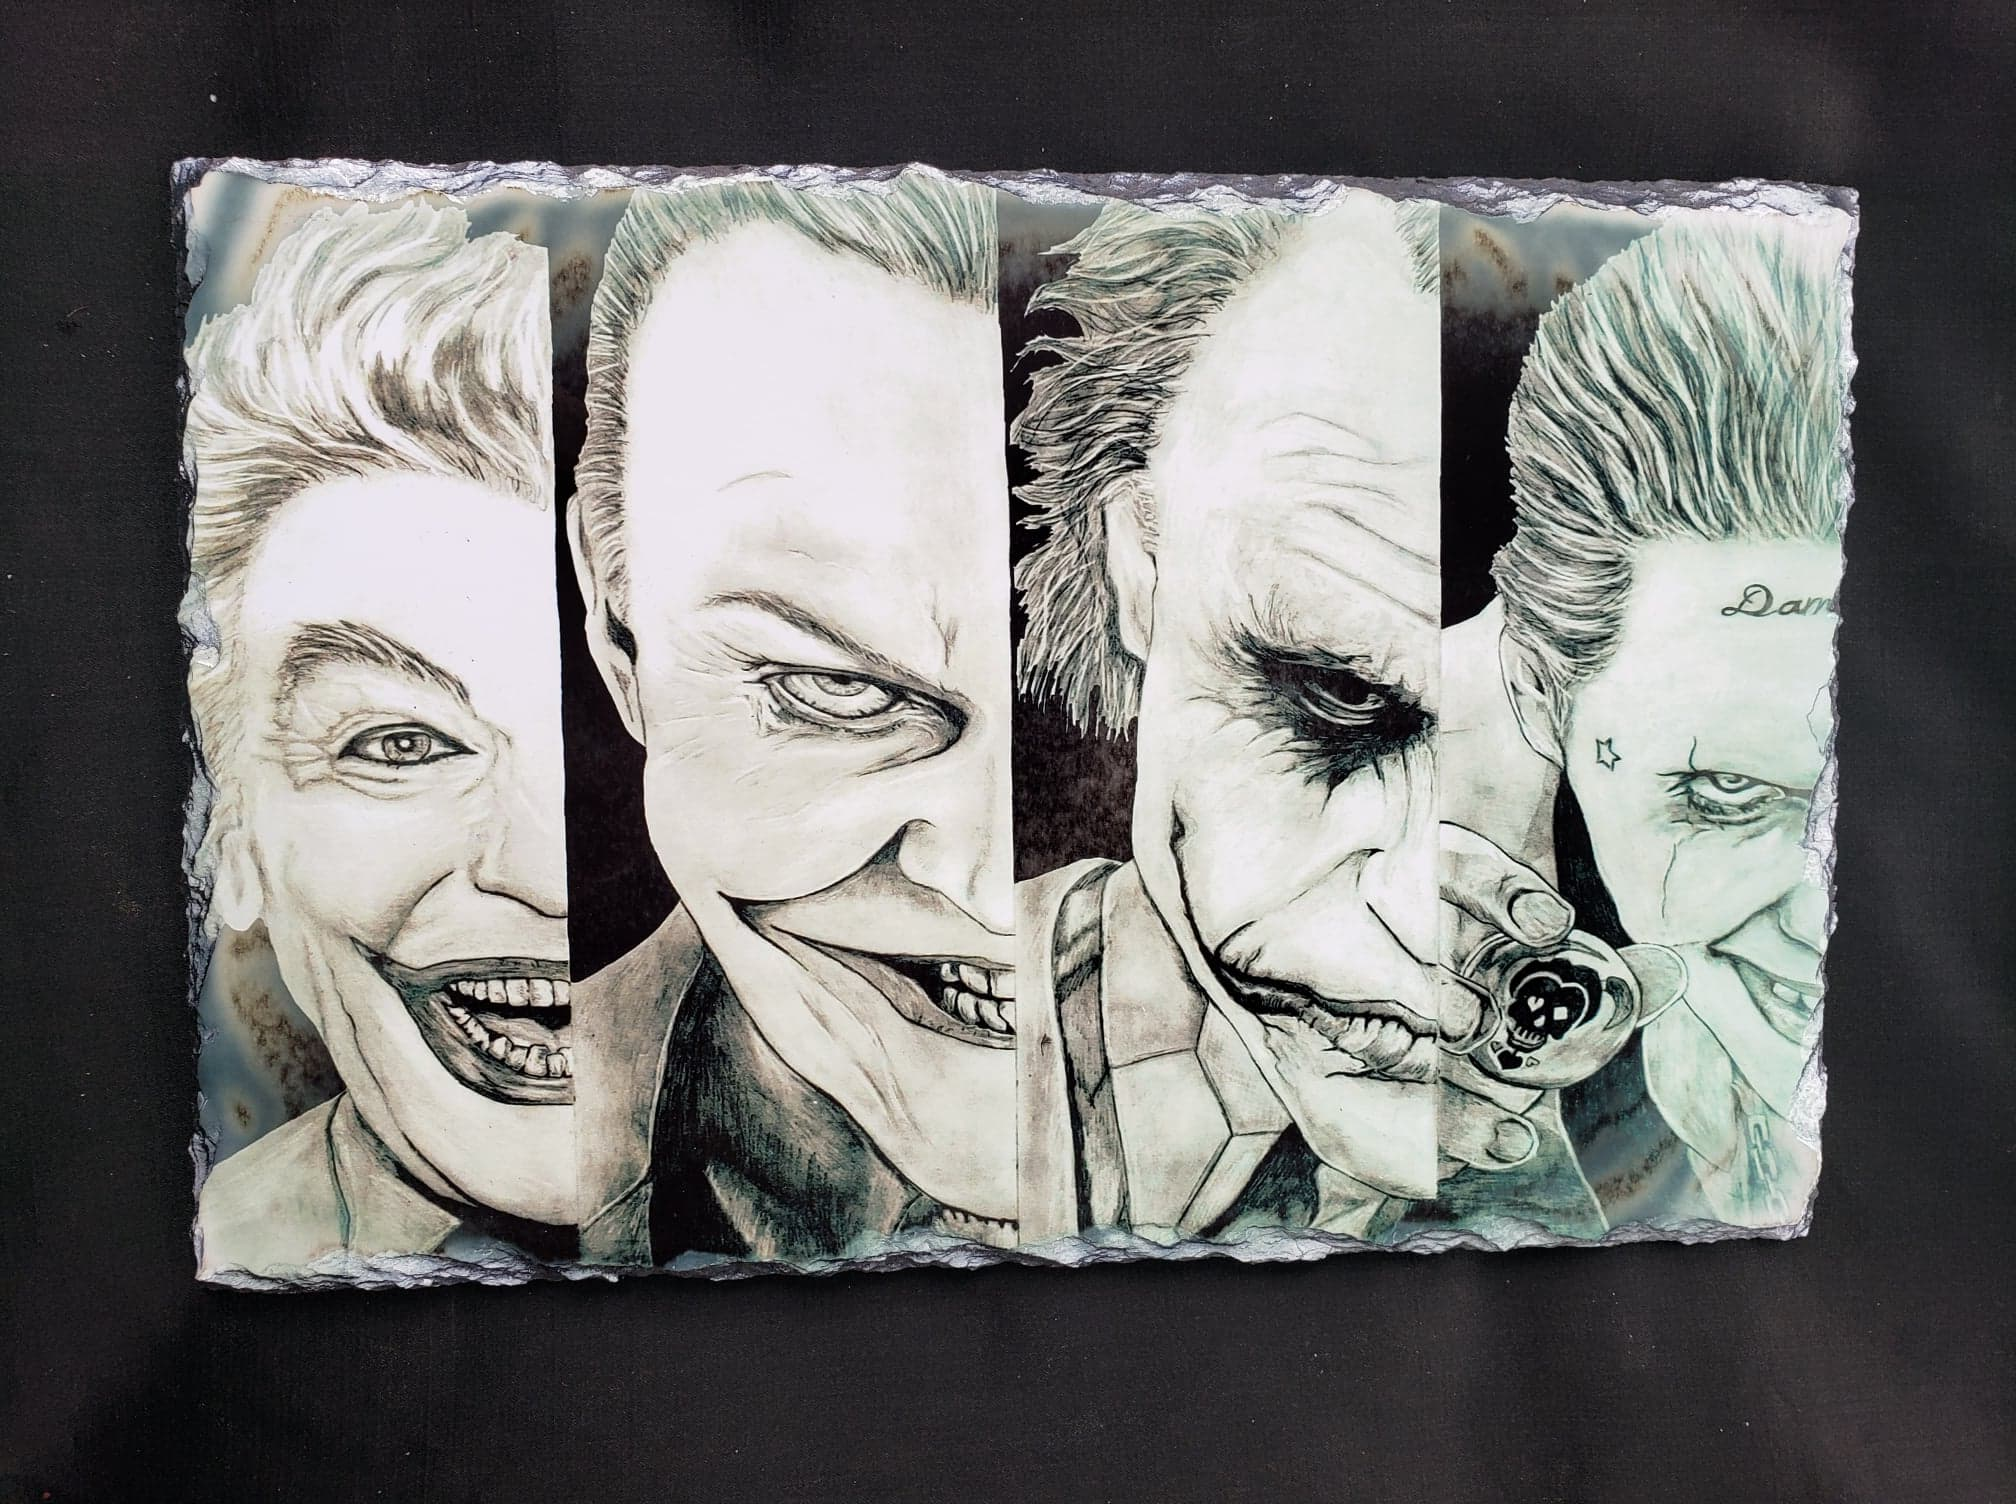 Joker through the years Print on Large Stone Tile